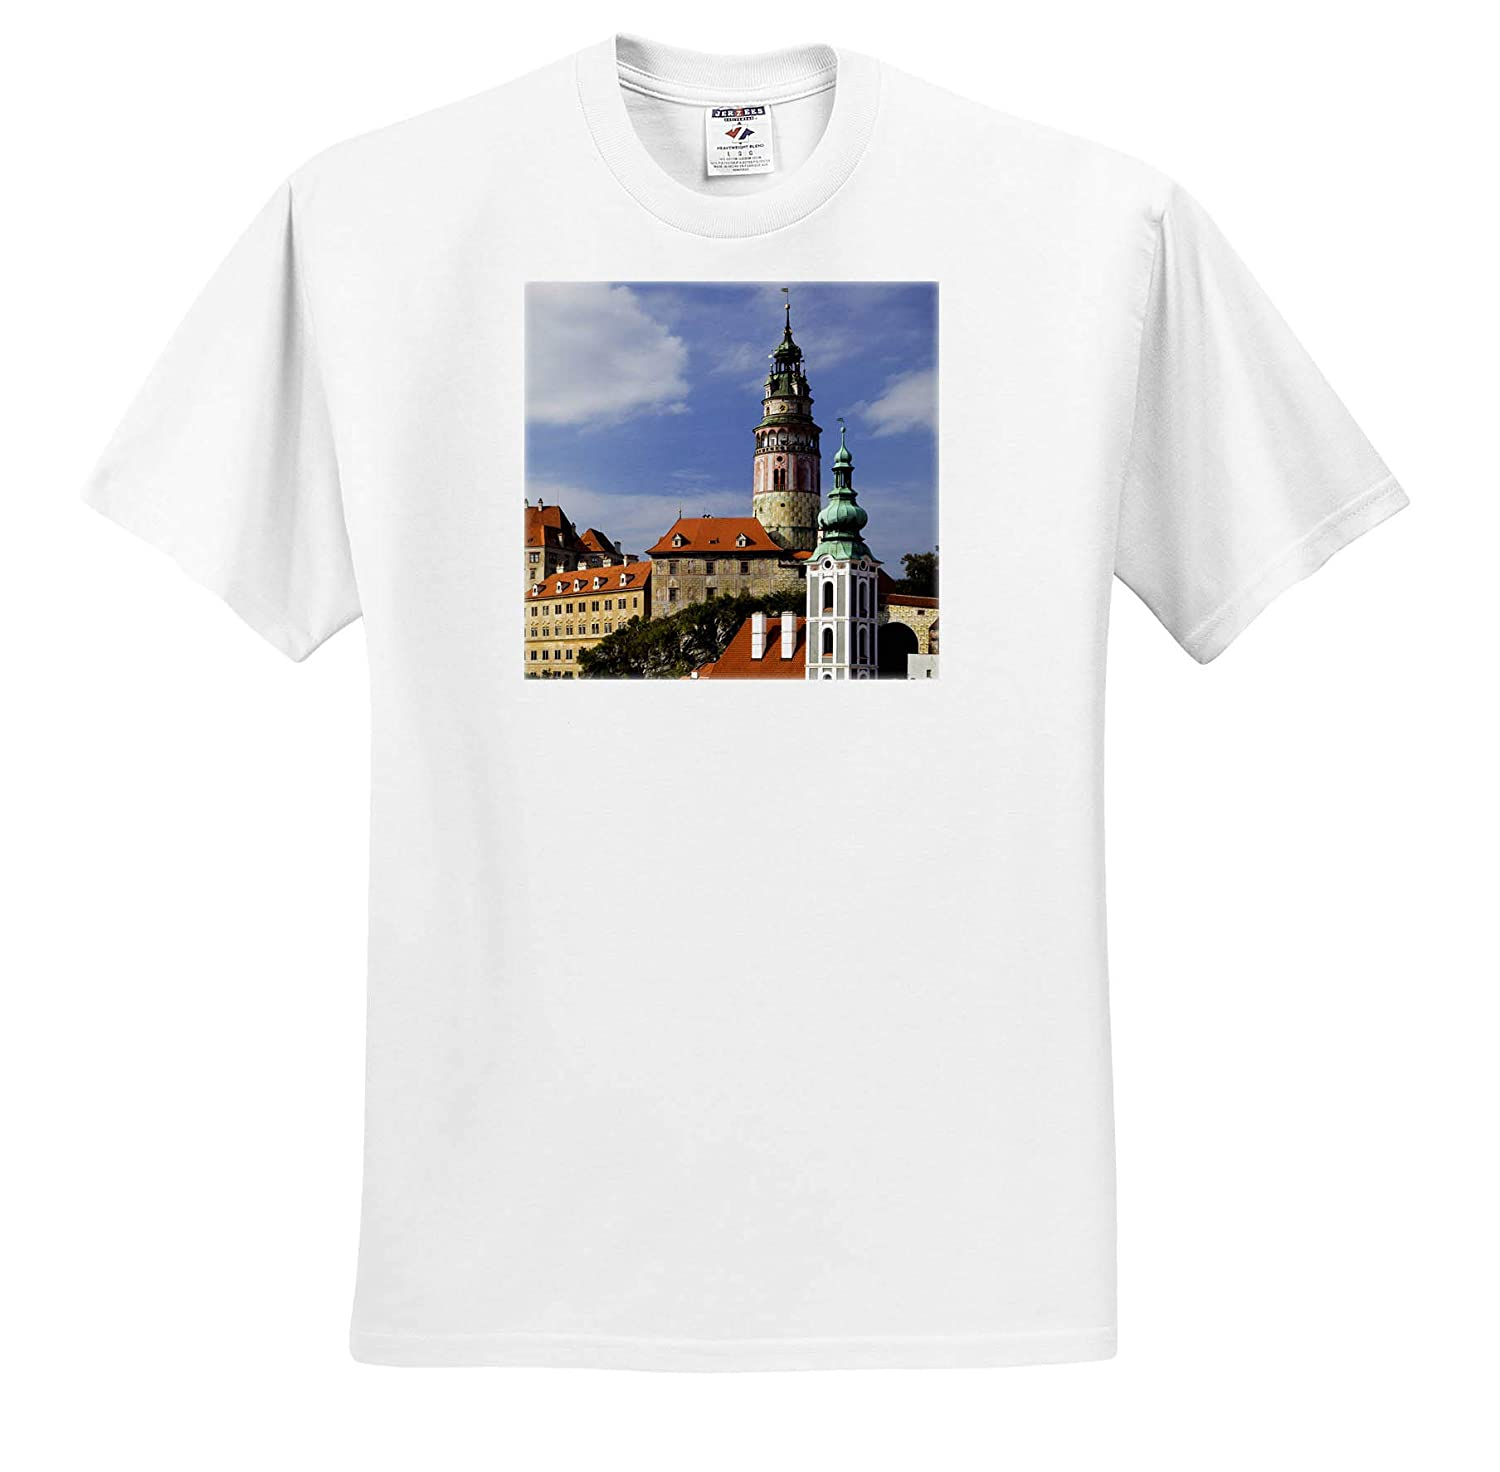 ts/_313070 Czech Republic Czech Republic - Adult T-Shirt XL 3dRose Danita Delimont Cesky Krumlov Overview of City